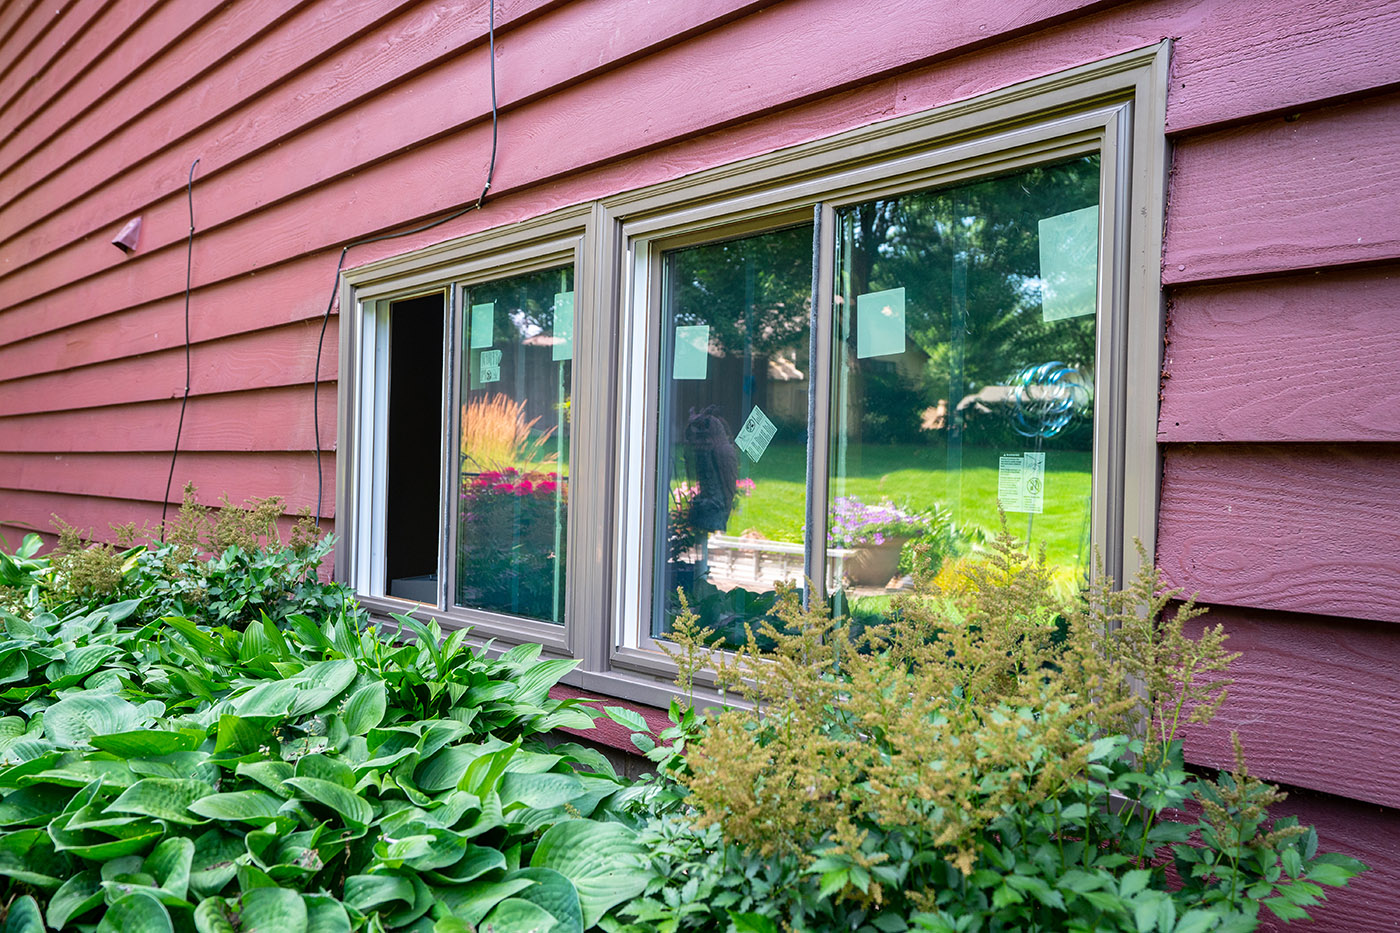 SeasonGuard sliding window